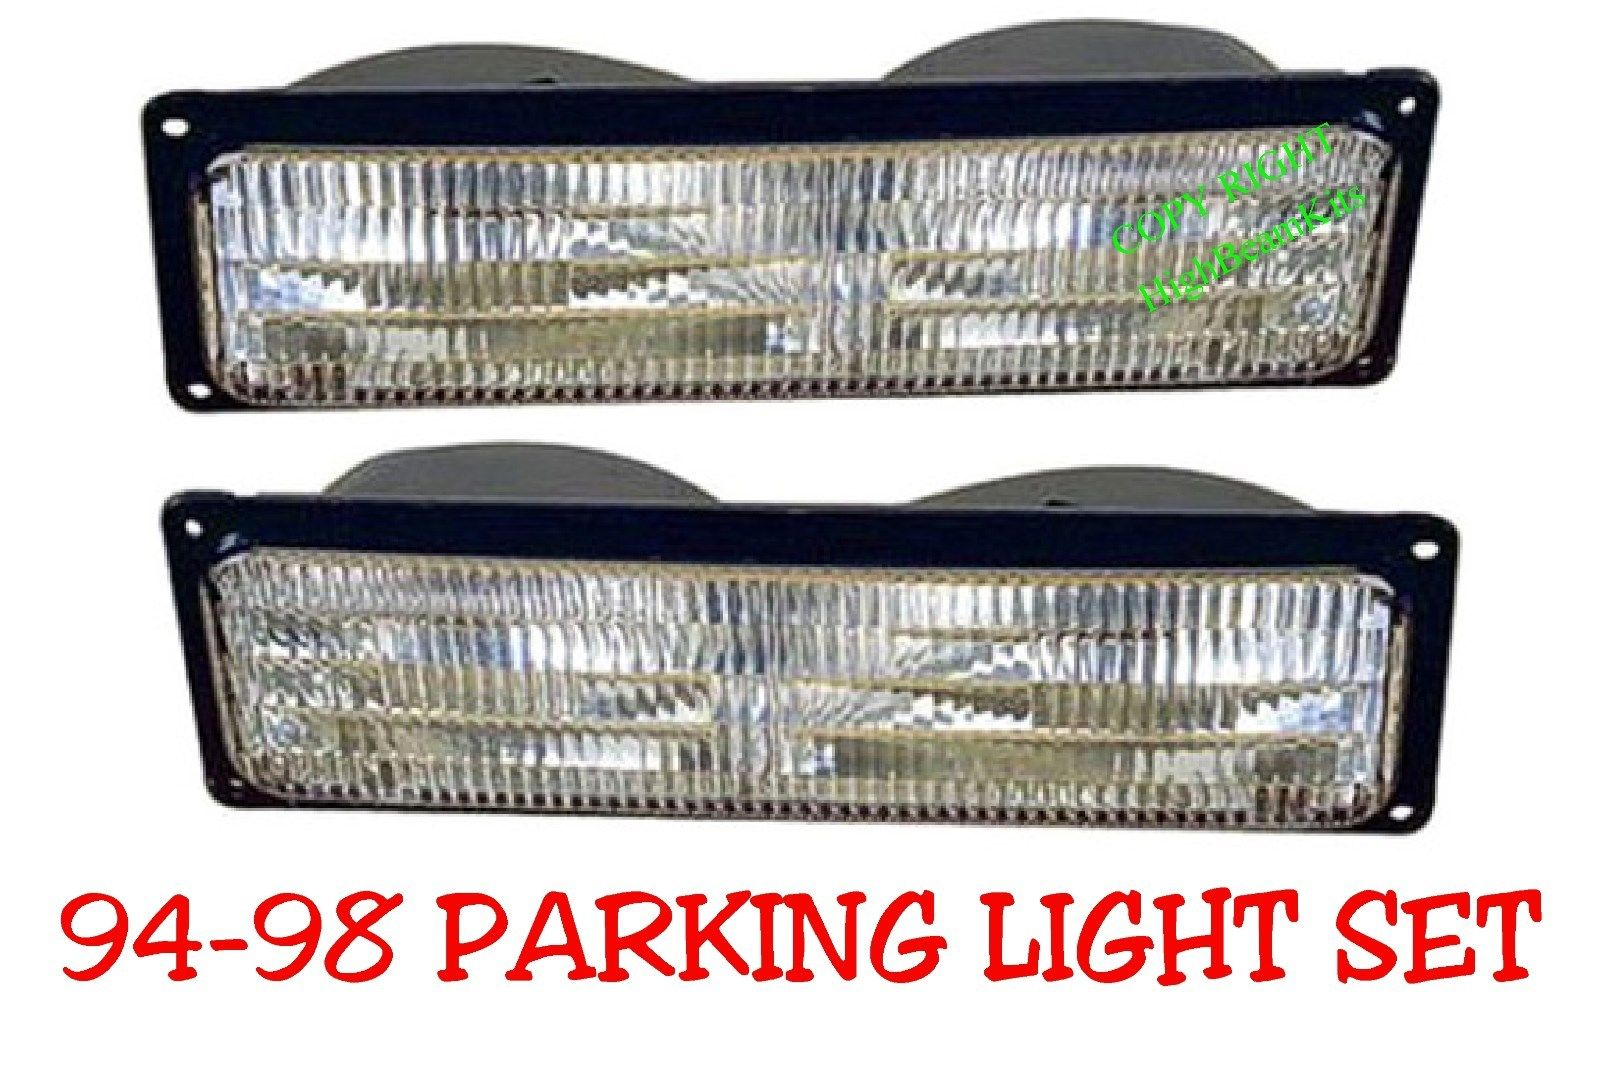 94-98 Chevy & GMC Parking Light Set